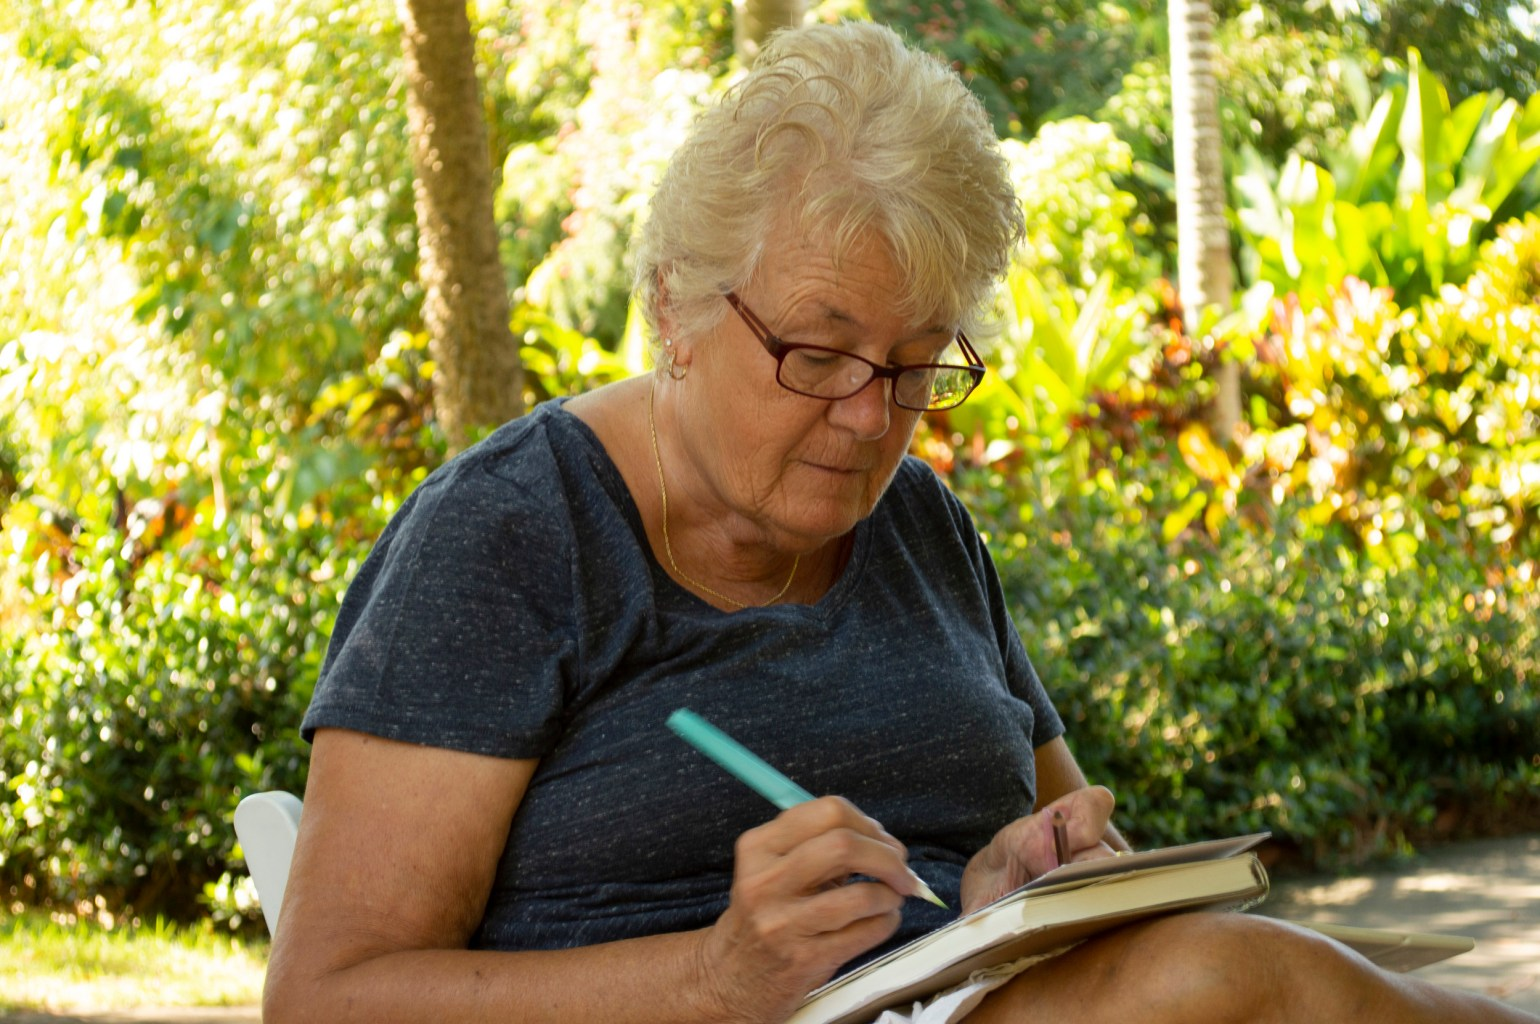 A person in a garden concentrating on a piece of paper with a drawing implement in hand